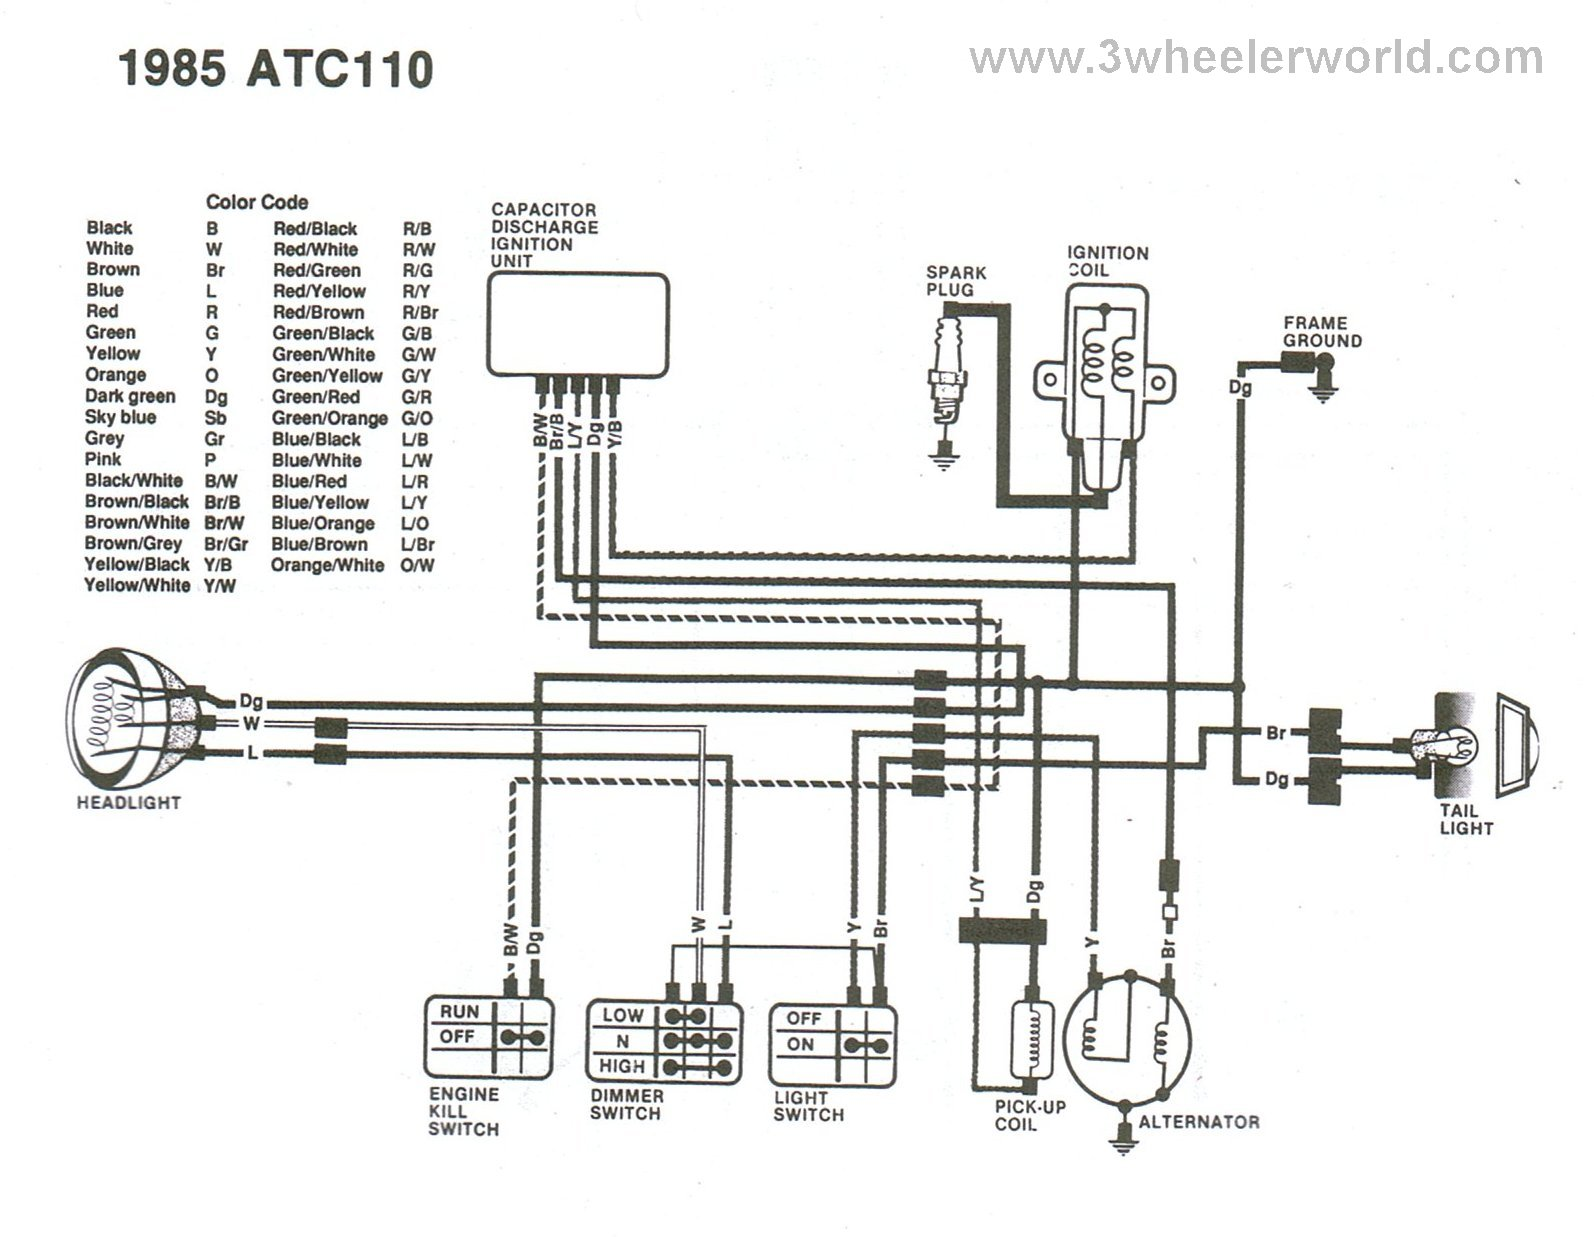 Atc Engine Diagram - Wiring Diagram Dash on honda ct70 parts diagram, honda ct70 engine, honda ct70 cylinder head, honda ct70 flywheel, honda ct70 specifications, trail 90 wiring diagram, honda ct70 headlight, saab 9-7x wiring diagram, honda ct70 mini trail, honda ct70 fuel tank, honda ct70 air cleaner, honda ct70 exhaust, honda trail 70 carburetor diagram, honda ct70 parts catalog, honda motorcycle wiring schematics, honda ct70 turn signals, honda ct70 frame, saturn l-series wiring diagram, honda ct70 tires, honda ct70 carb diagram,